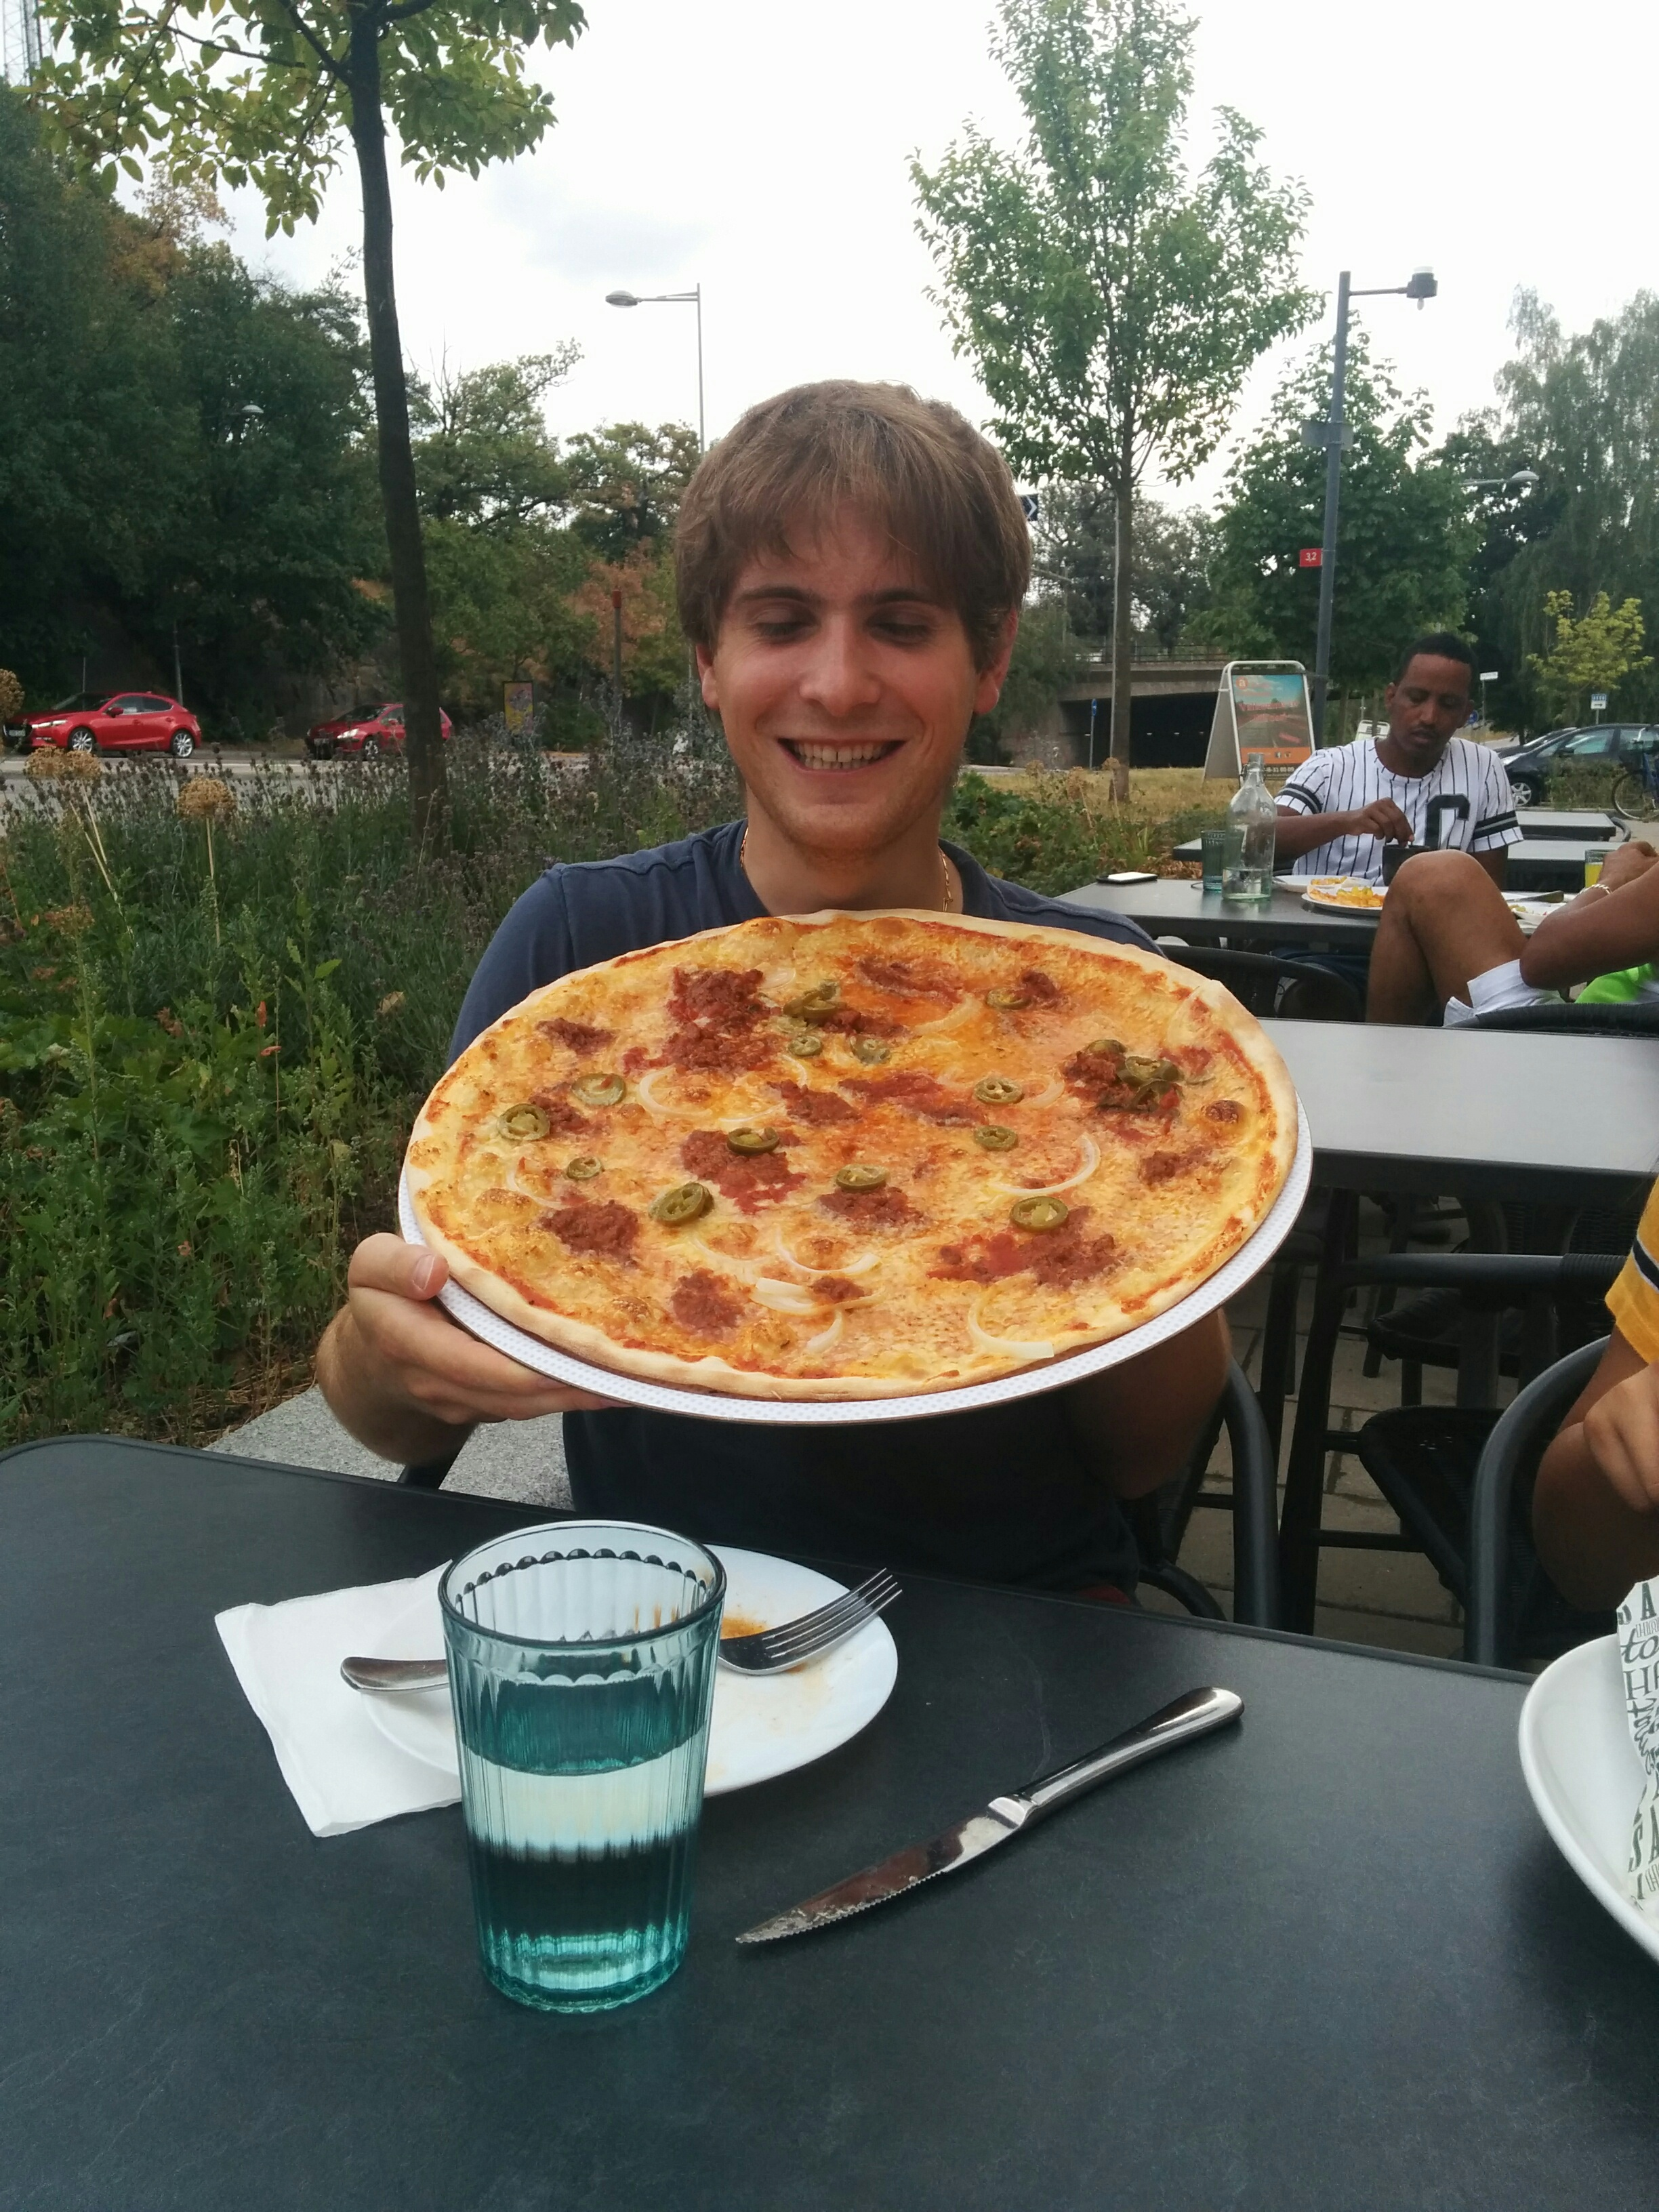 Giant pizza.